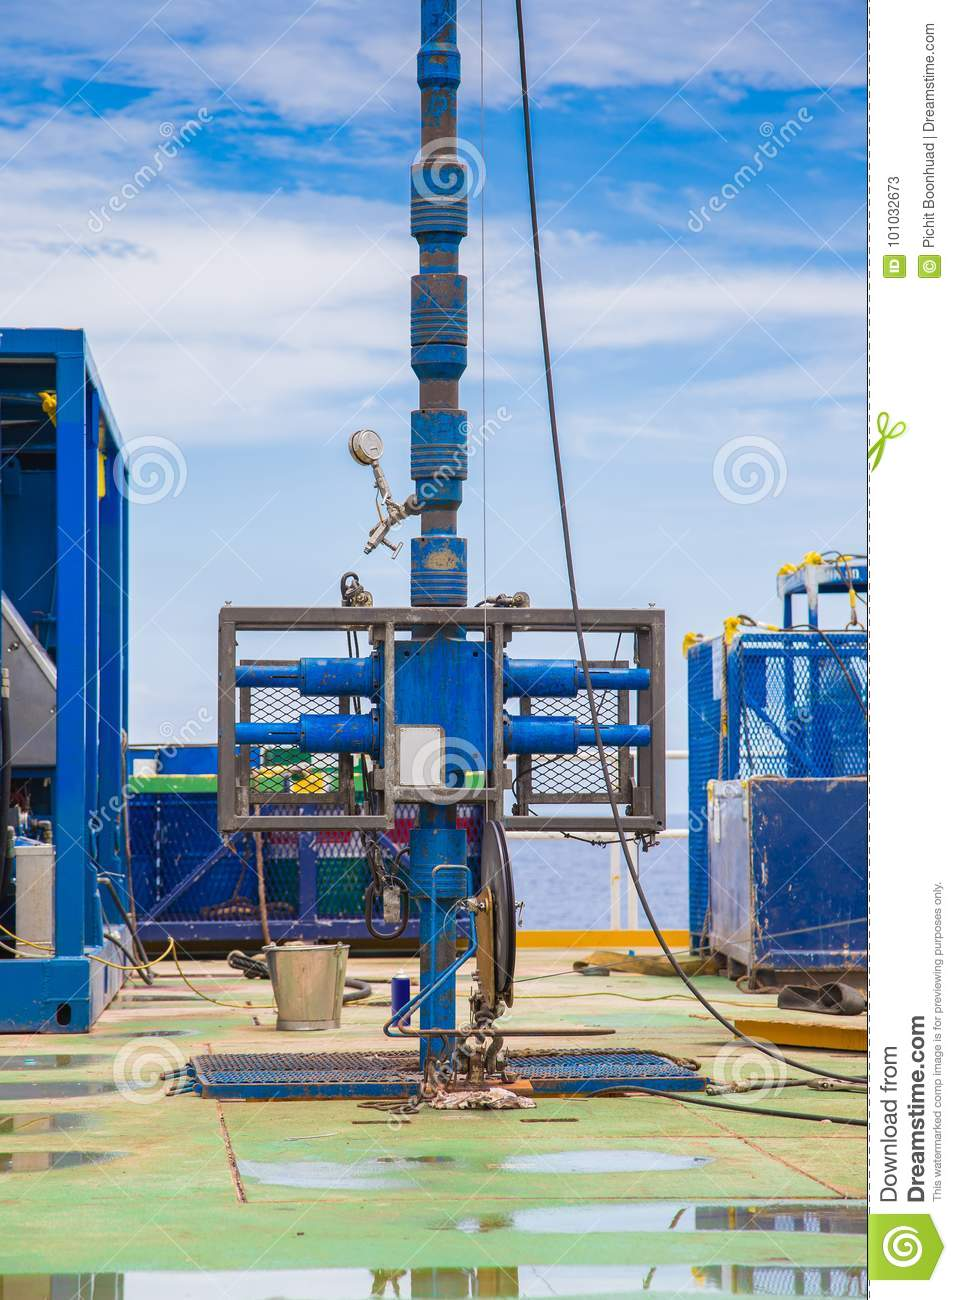 Blowout Preventer And Lubricator, Drilling Oil And Gas Well